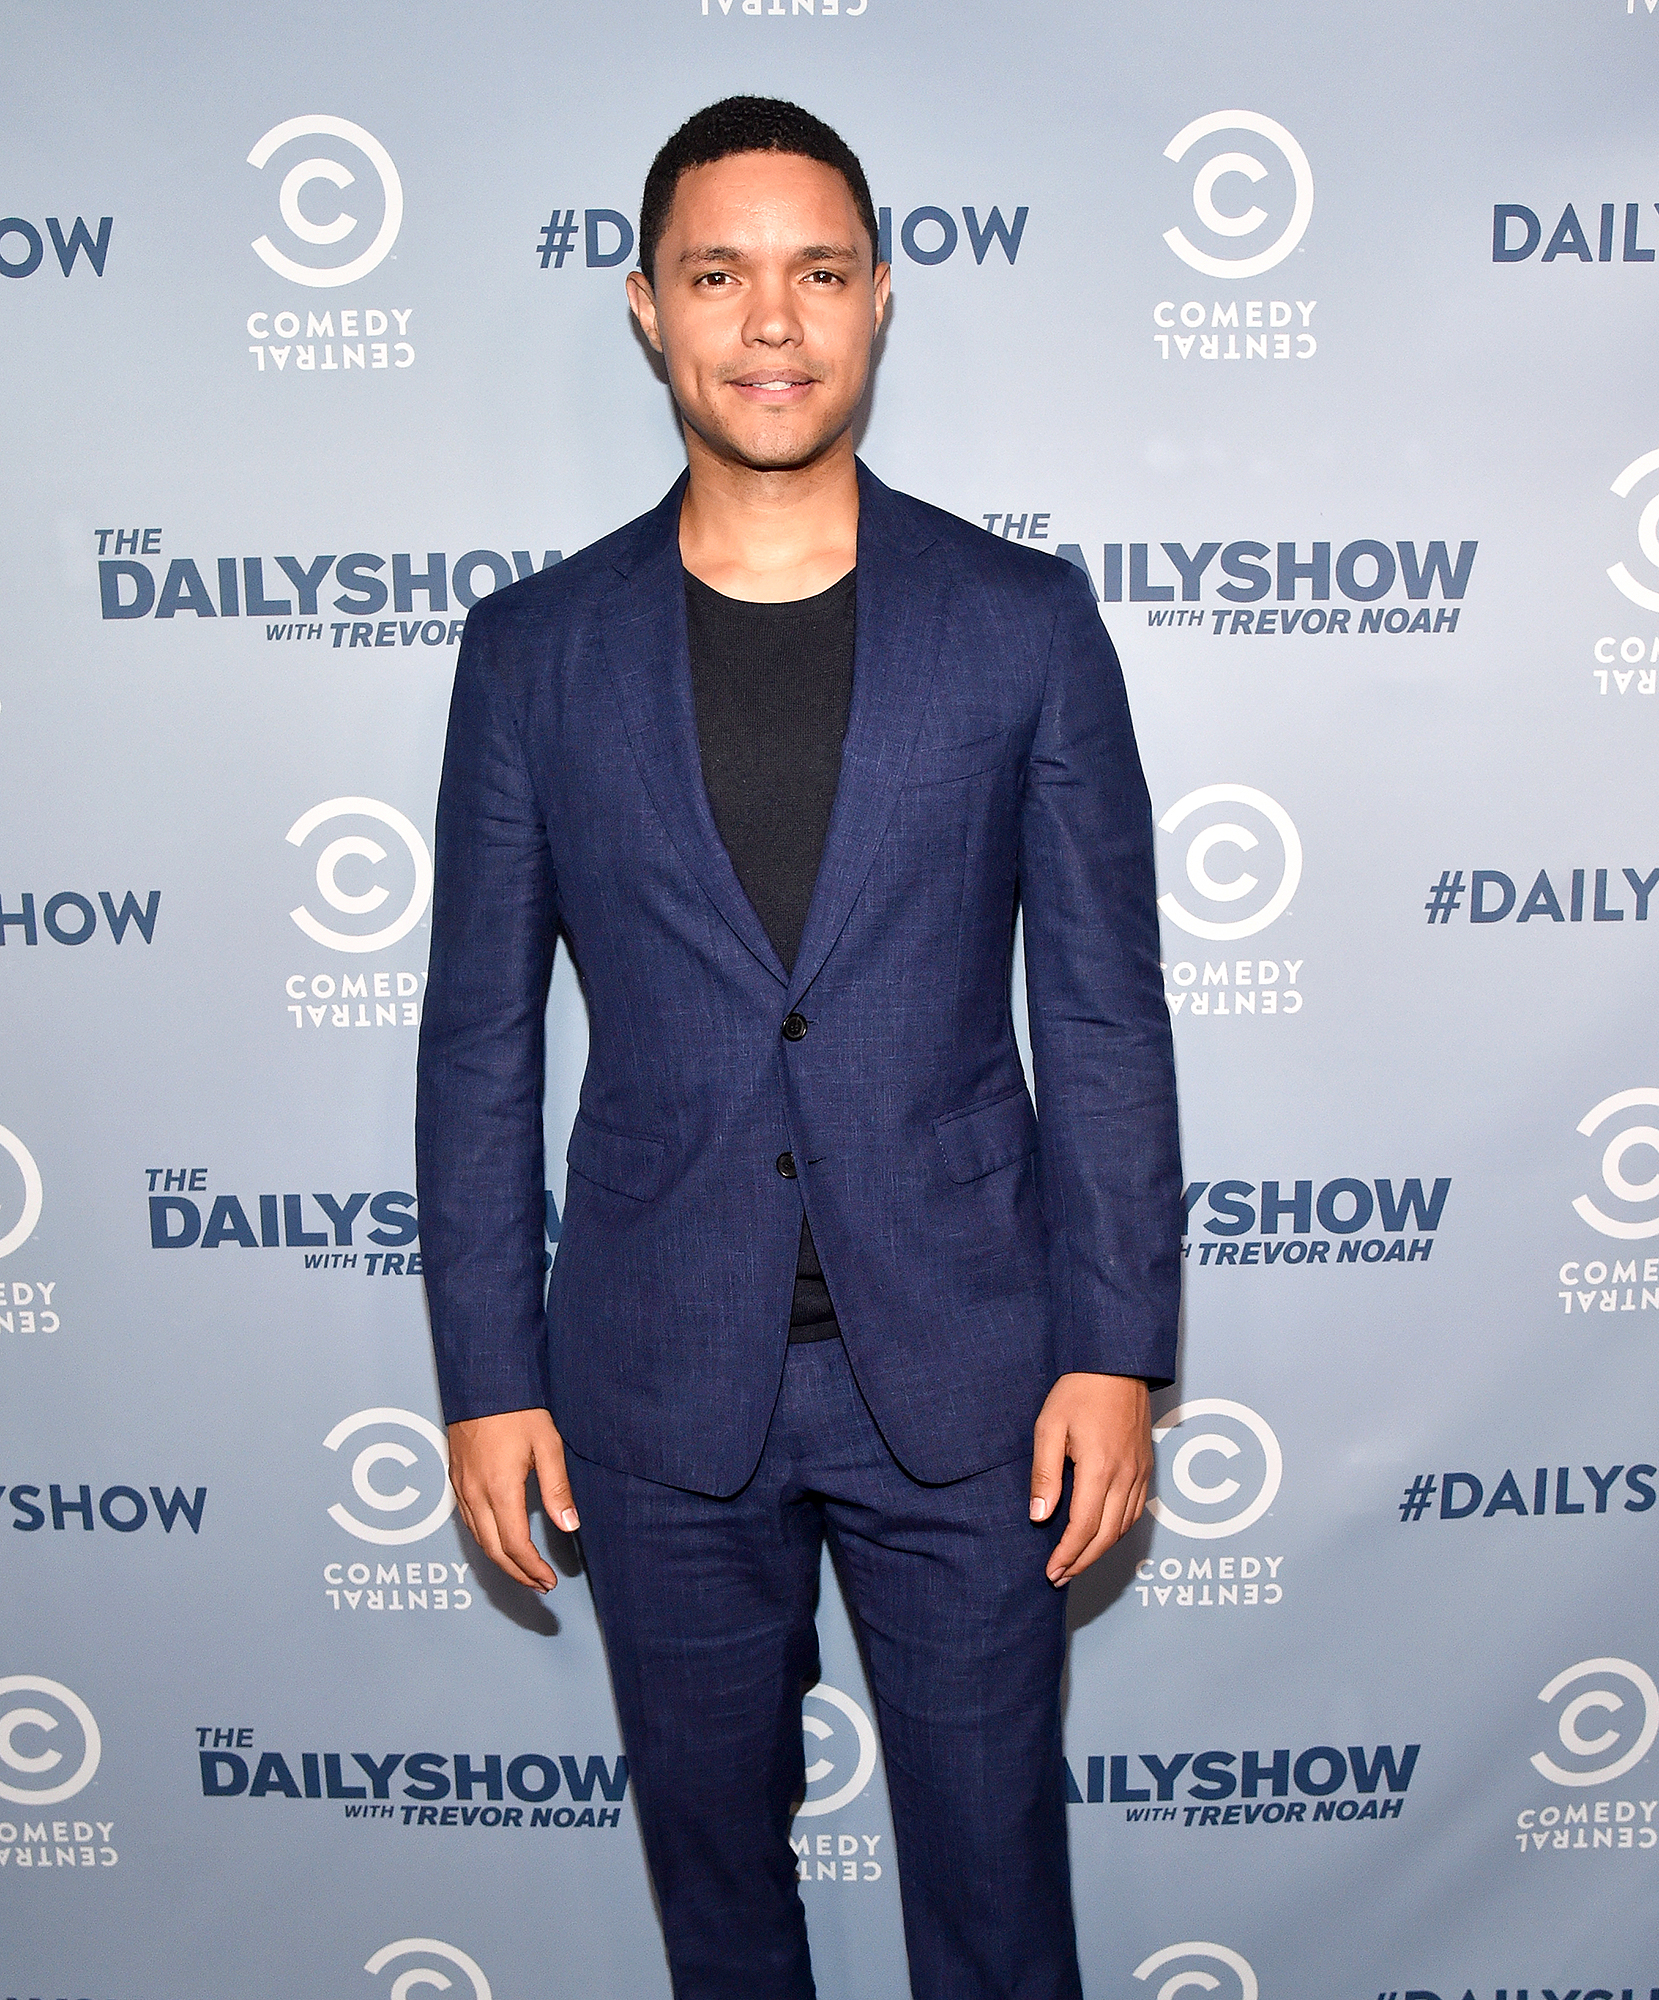 The Daily Show FYC 2017